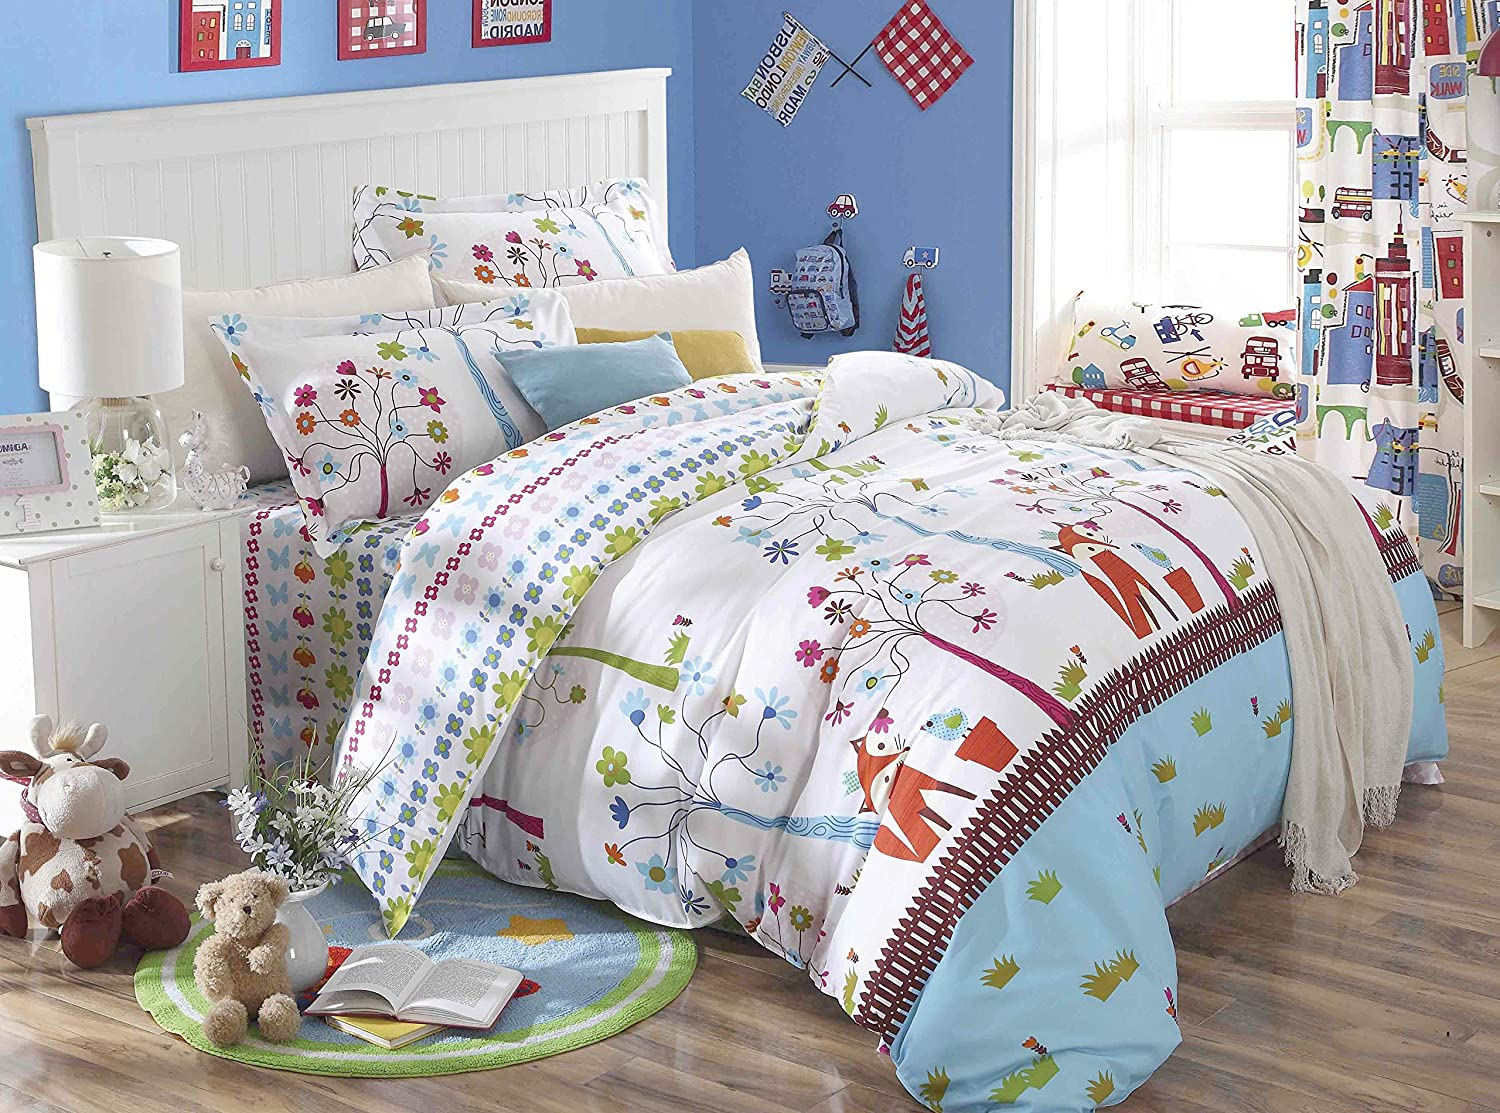 Full size childrens bedding sets - Amazon Com Cliab Fox Bedding Woodland Bed Sheets Full Size Kids Girls Duvet Cover Set 100 Cotton 5 Pieces Home Kitchen